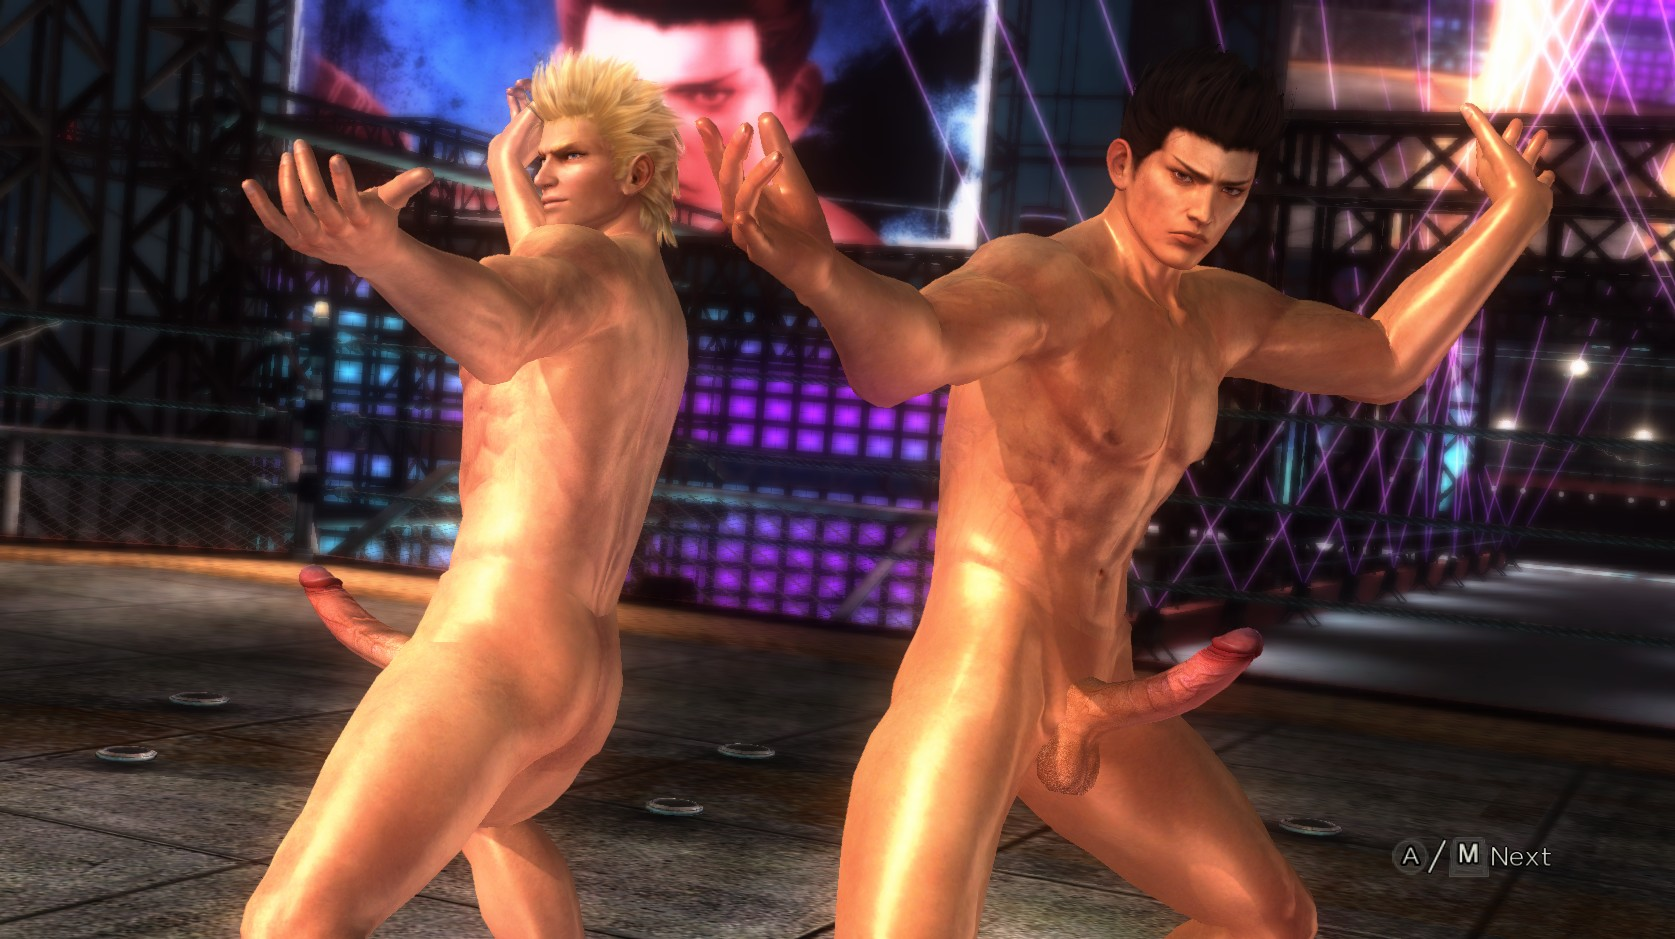 Saints row 4 male nudity patch erotic photos